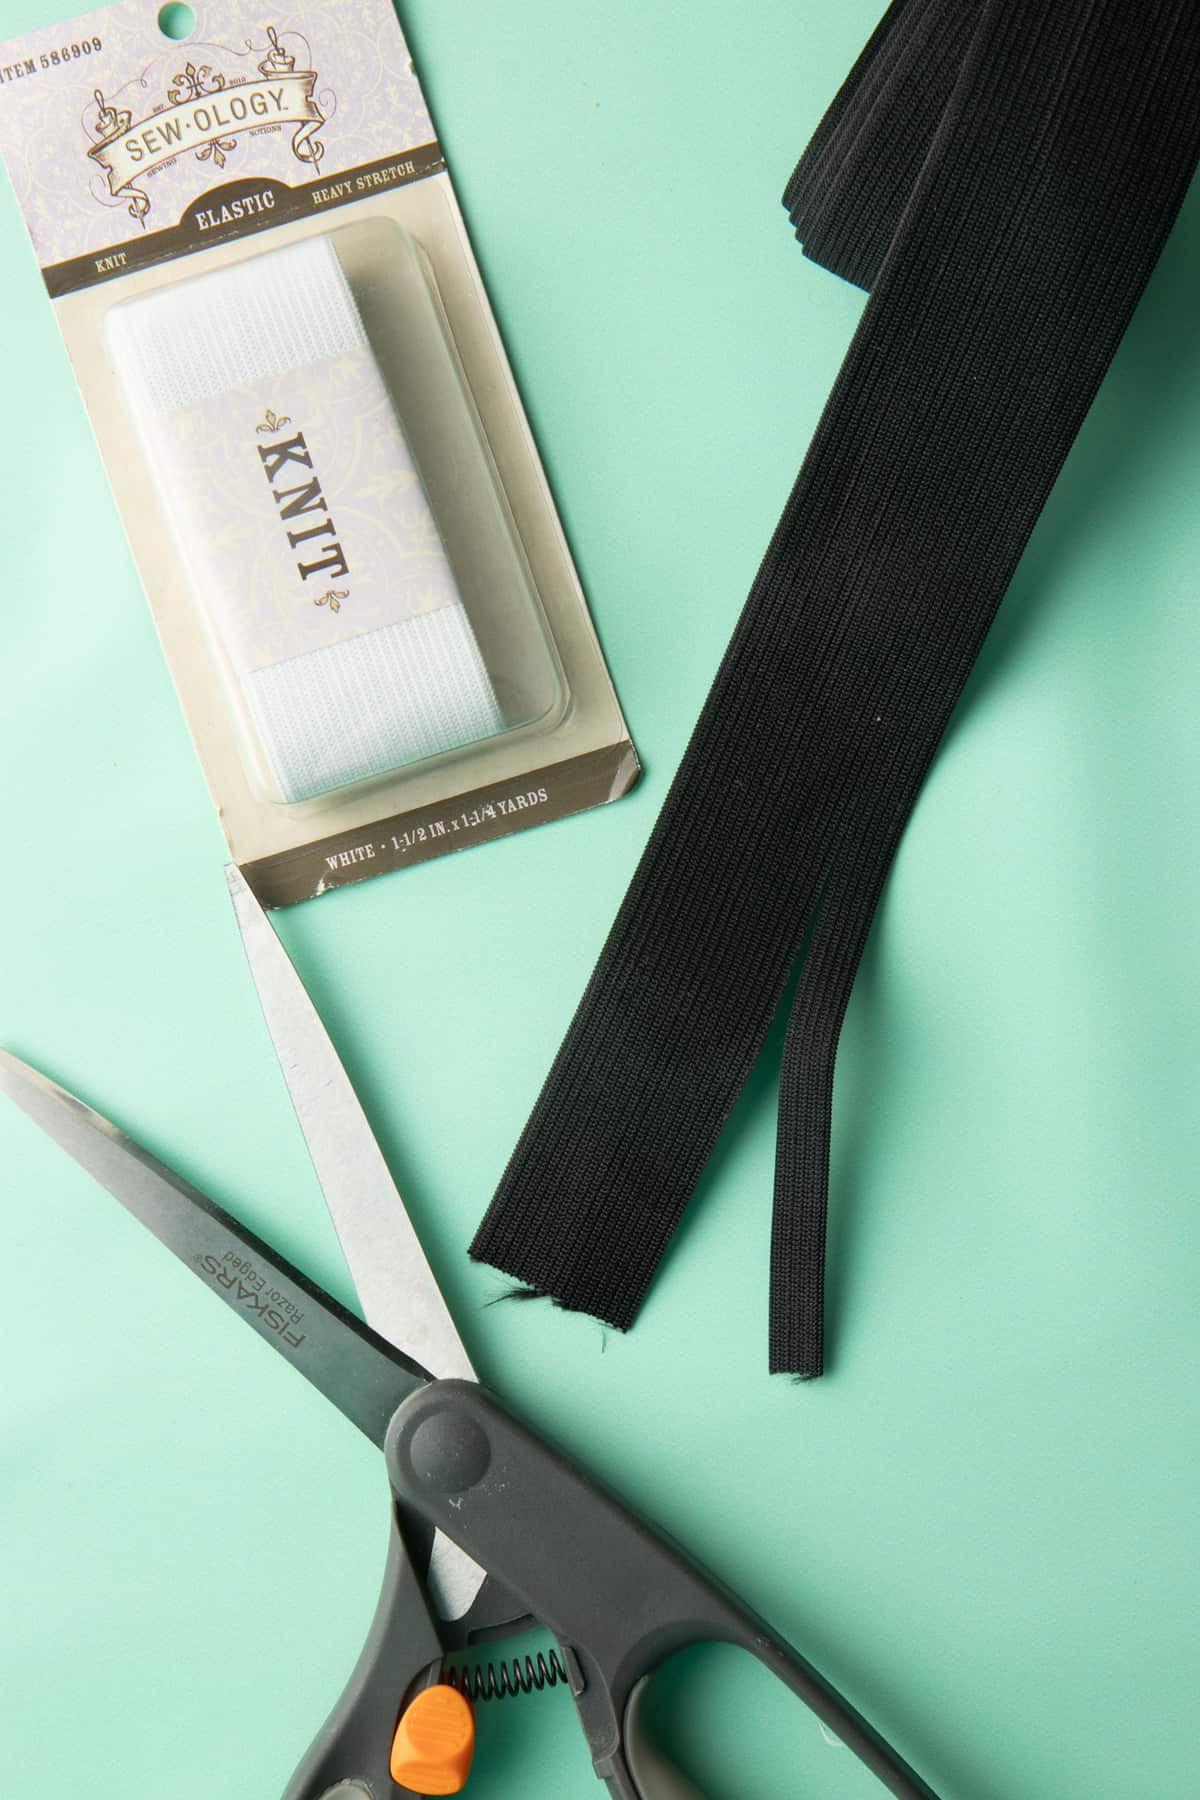 A pack of knit elastic and scissors sit on a green background. An opened portion of black elastic sits in the top left of the image.